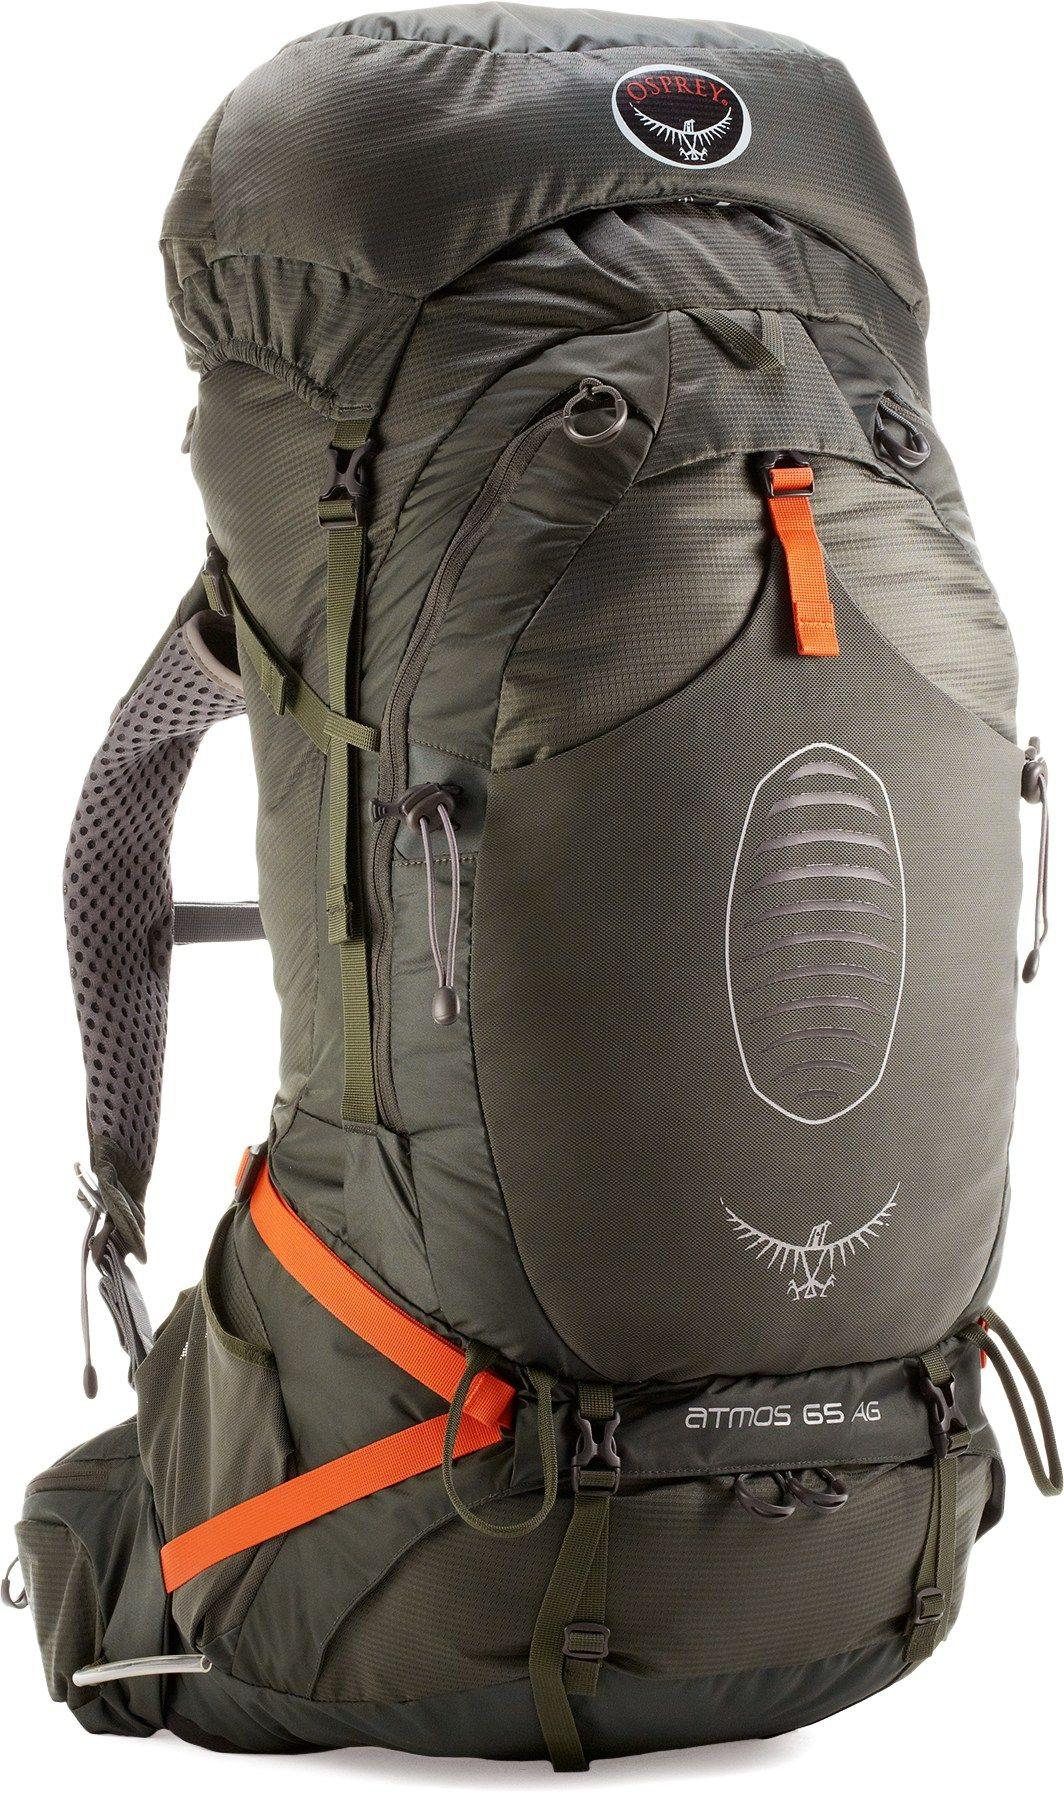 Osprey Atmos Ag 65 Pack Men S Osprey Atmos Camping Accessories Hiking Gear